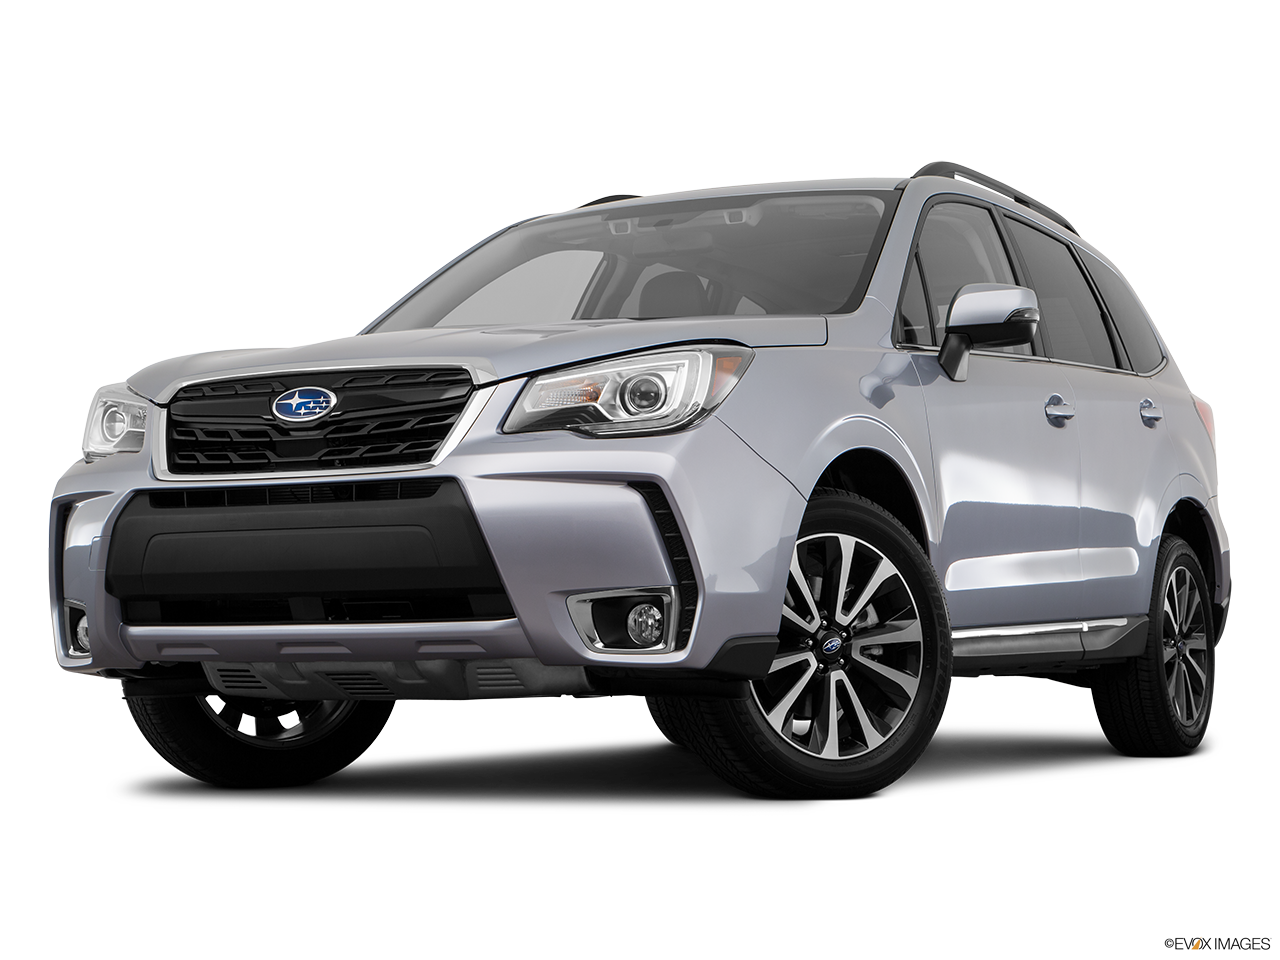 Test Drive A 2017 Subaru Forester at Galpin Subaru in Los Angeles